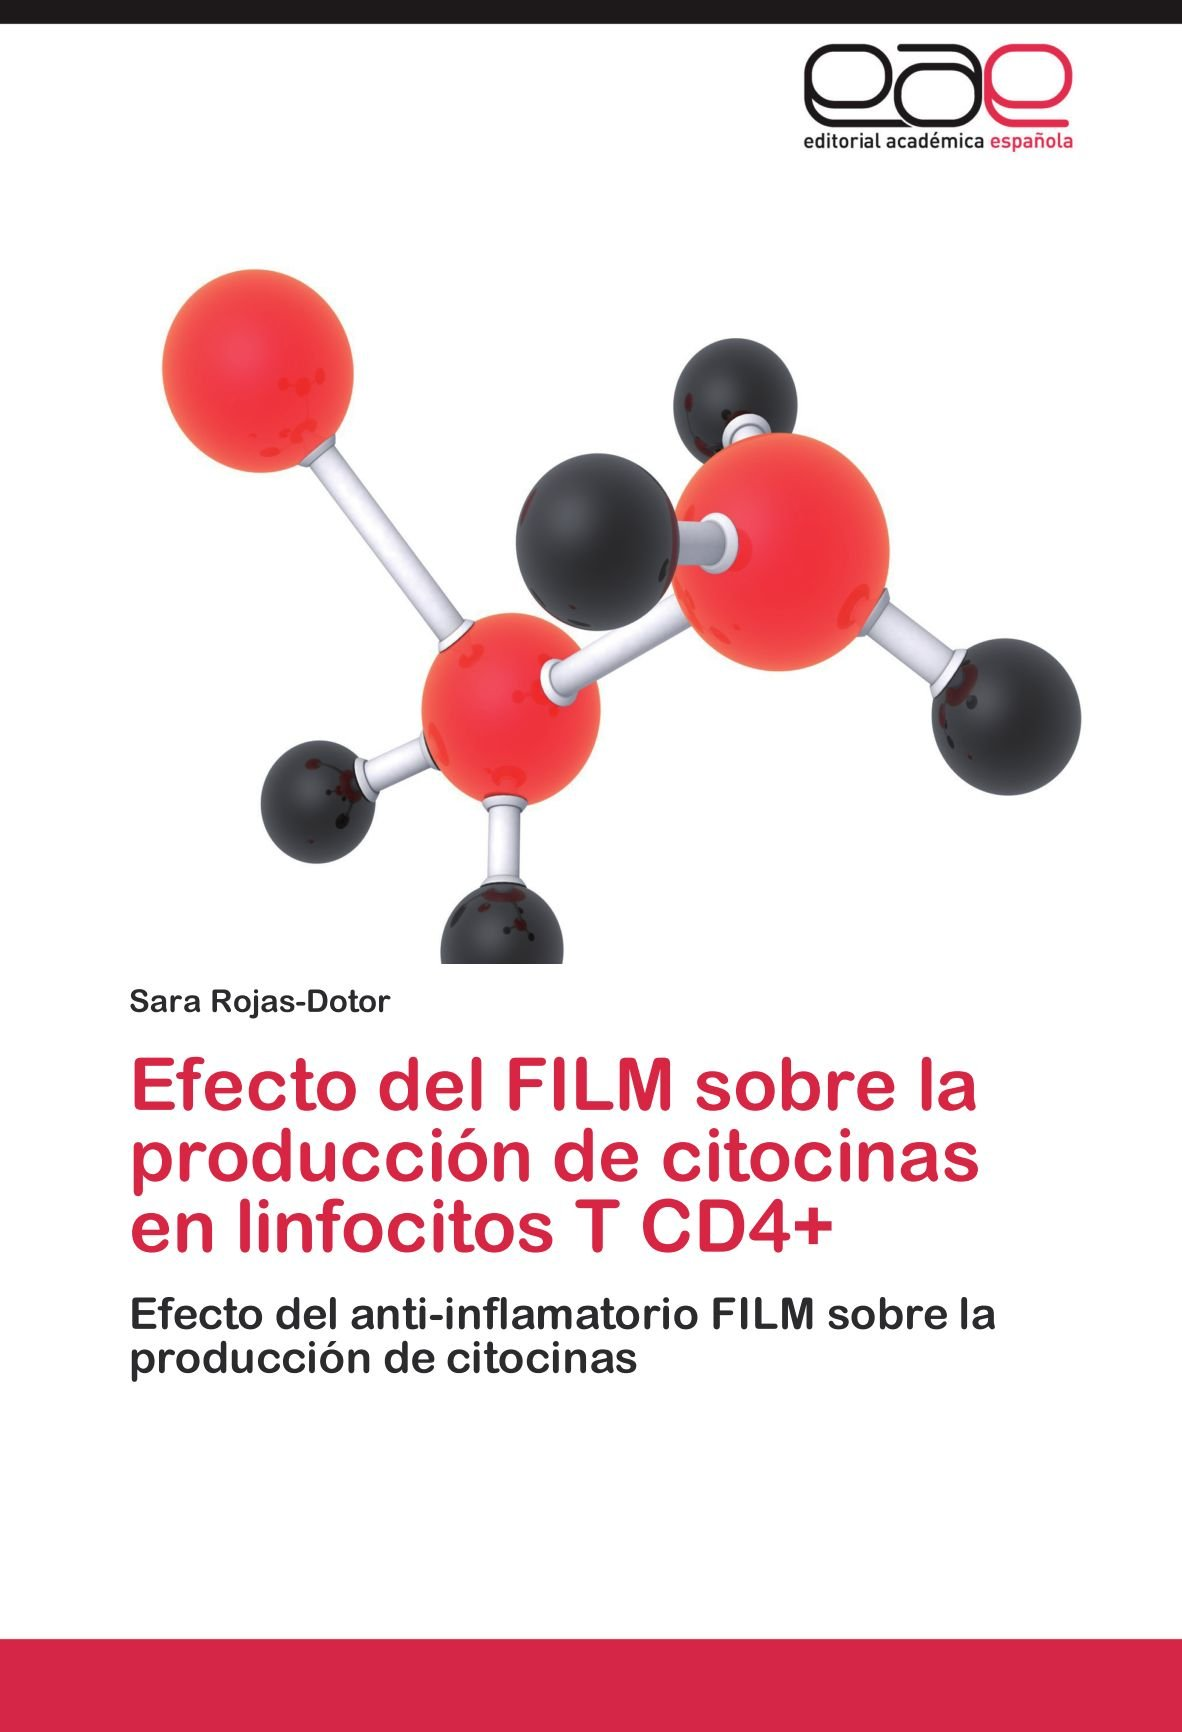 Buy Efecto Del Film Sobre La Produccion De Citocinas En Linfocitos T Cd4 Book Online At Low Prices In India Efecto Del Film Sobre La Produccion De Citocinas En Linfocitos T